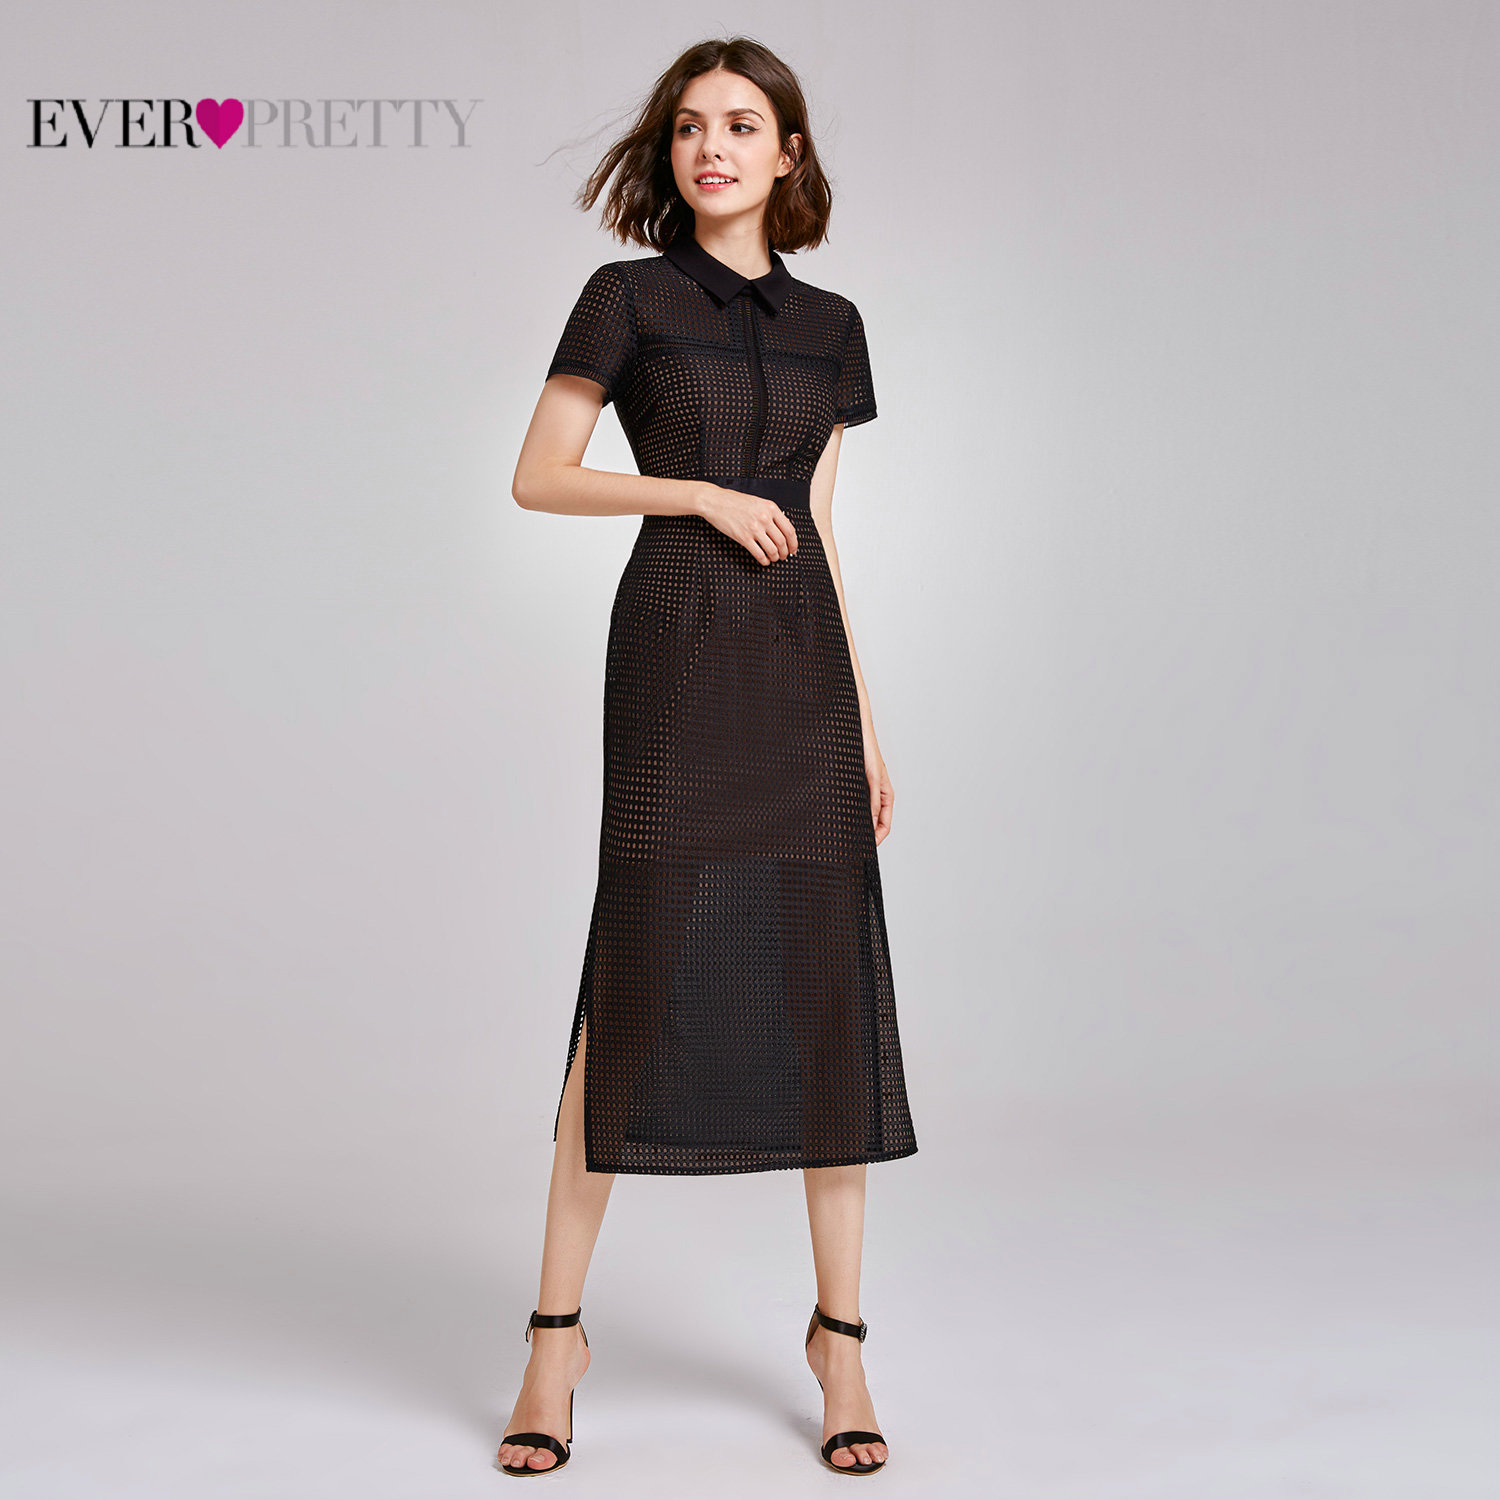 Lace Cocktail Dresses Ever Pretty AS07169 Short Sleeve Straight Sexy Causal Office Dress 2019 Tea Length Evening Gowns